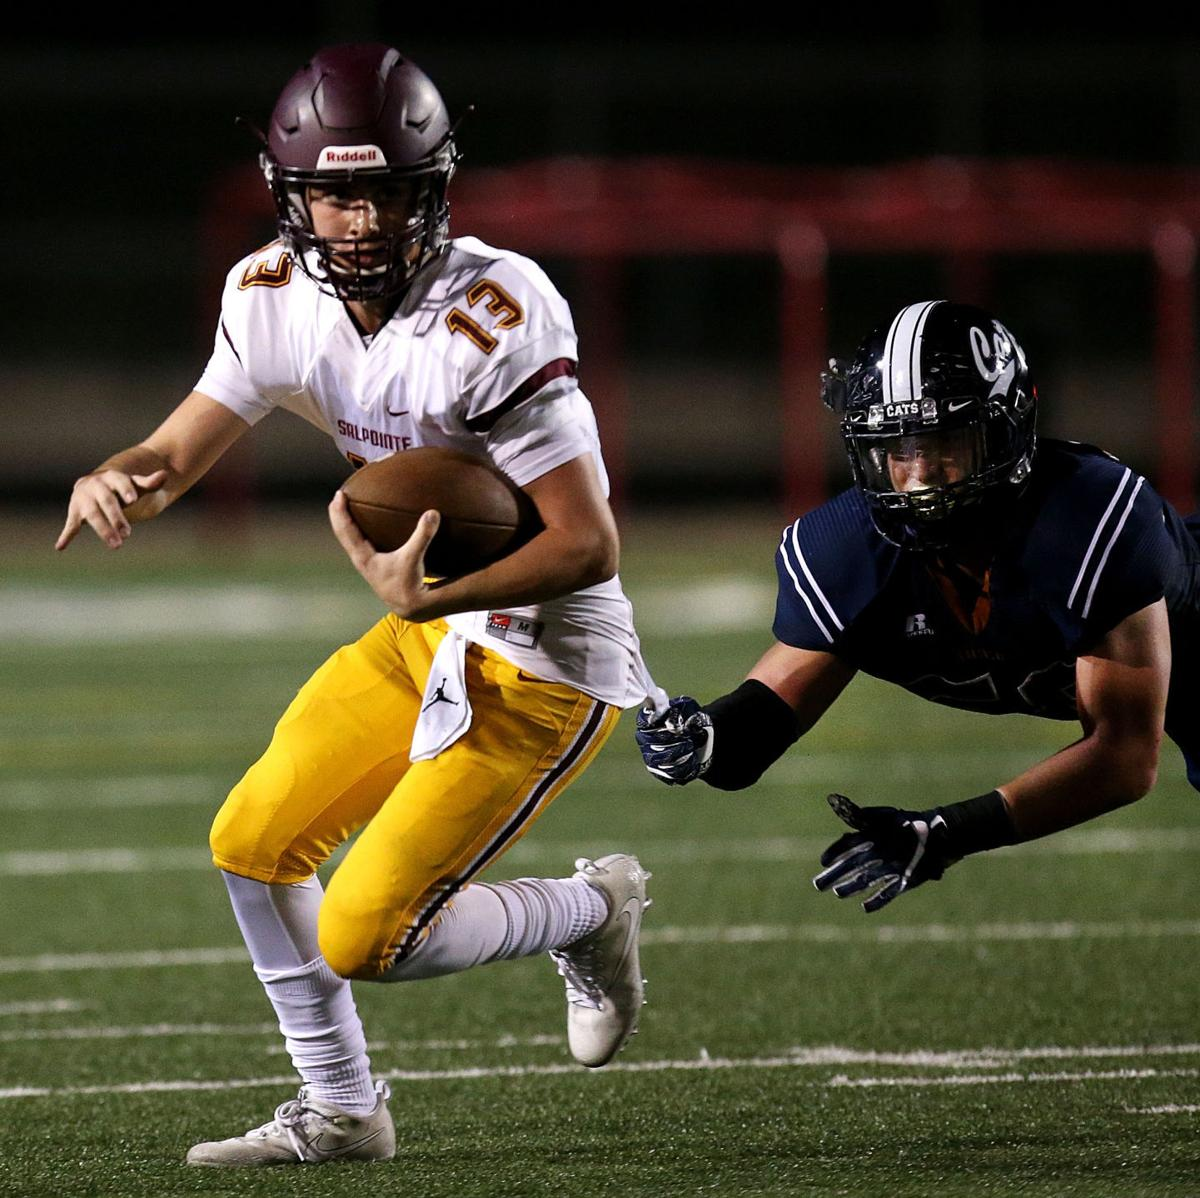 Salpointe Catholic vs. Cienega high school football